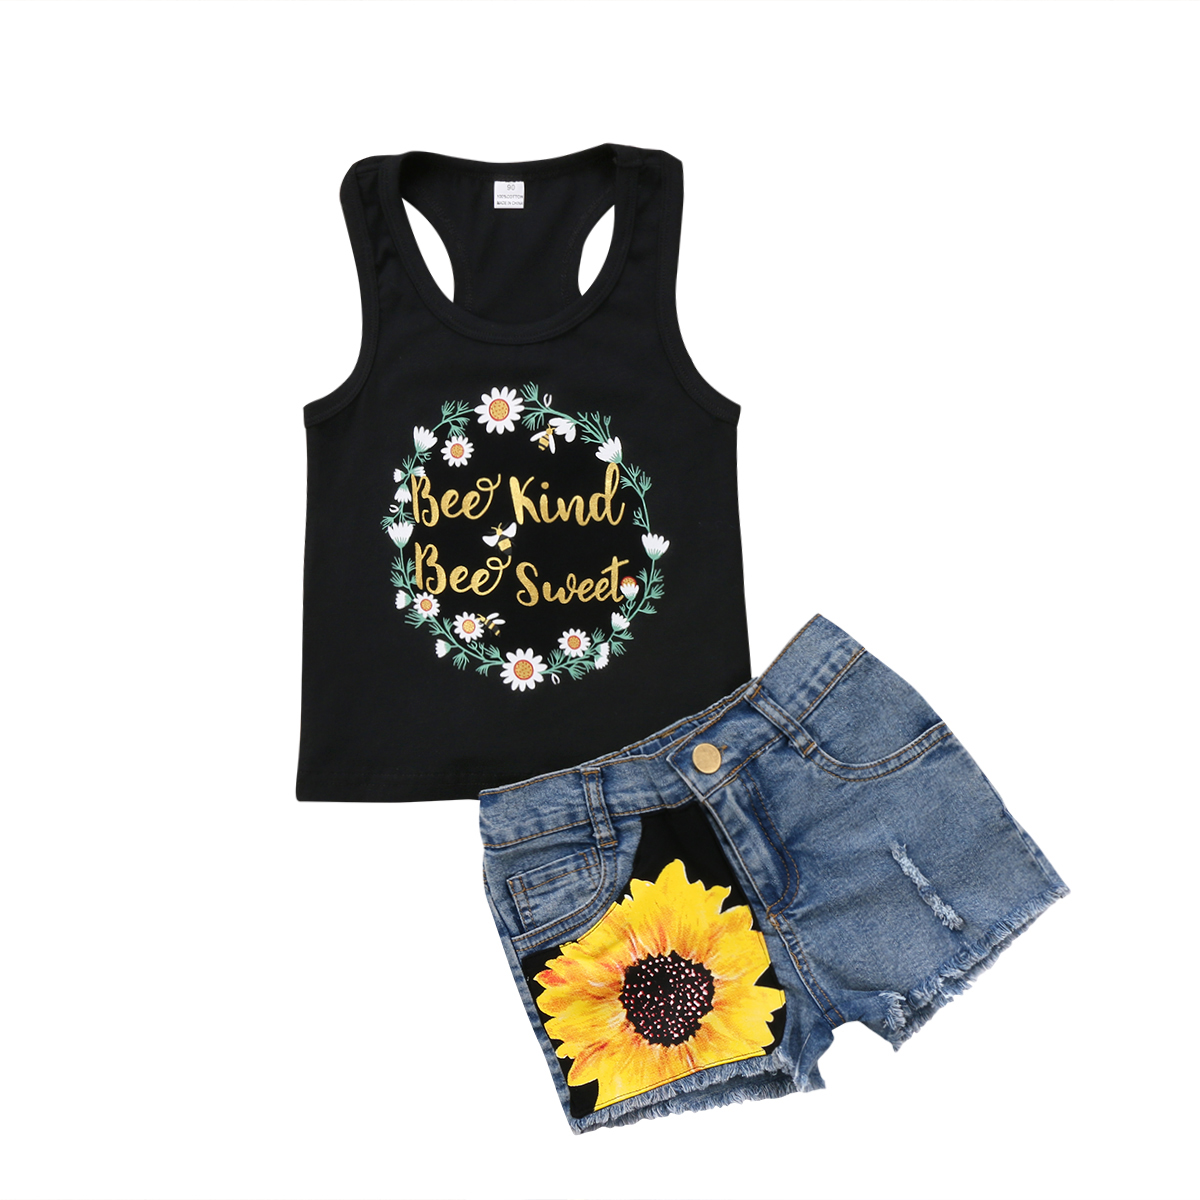 7968015ceca7 2Pcs Cute Baby Girl Kids Toddler Outfits Clothes Sleeveless T-shirt Tops  Sunflower Short Jeans Sunsuit Clothes Set